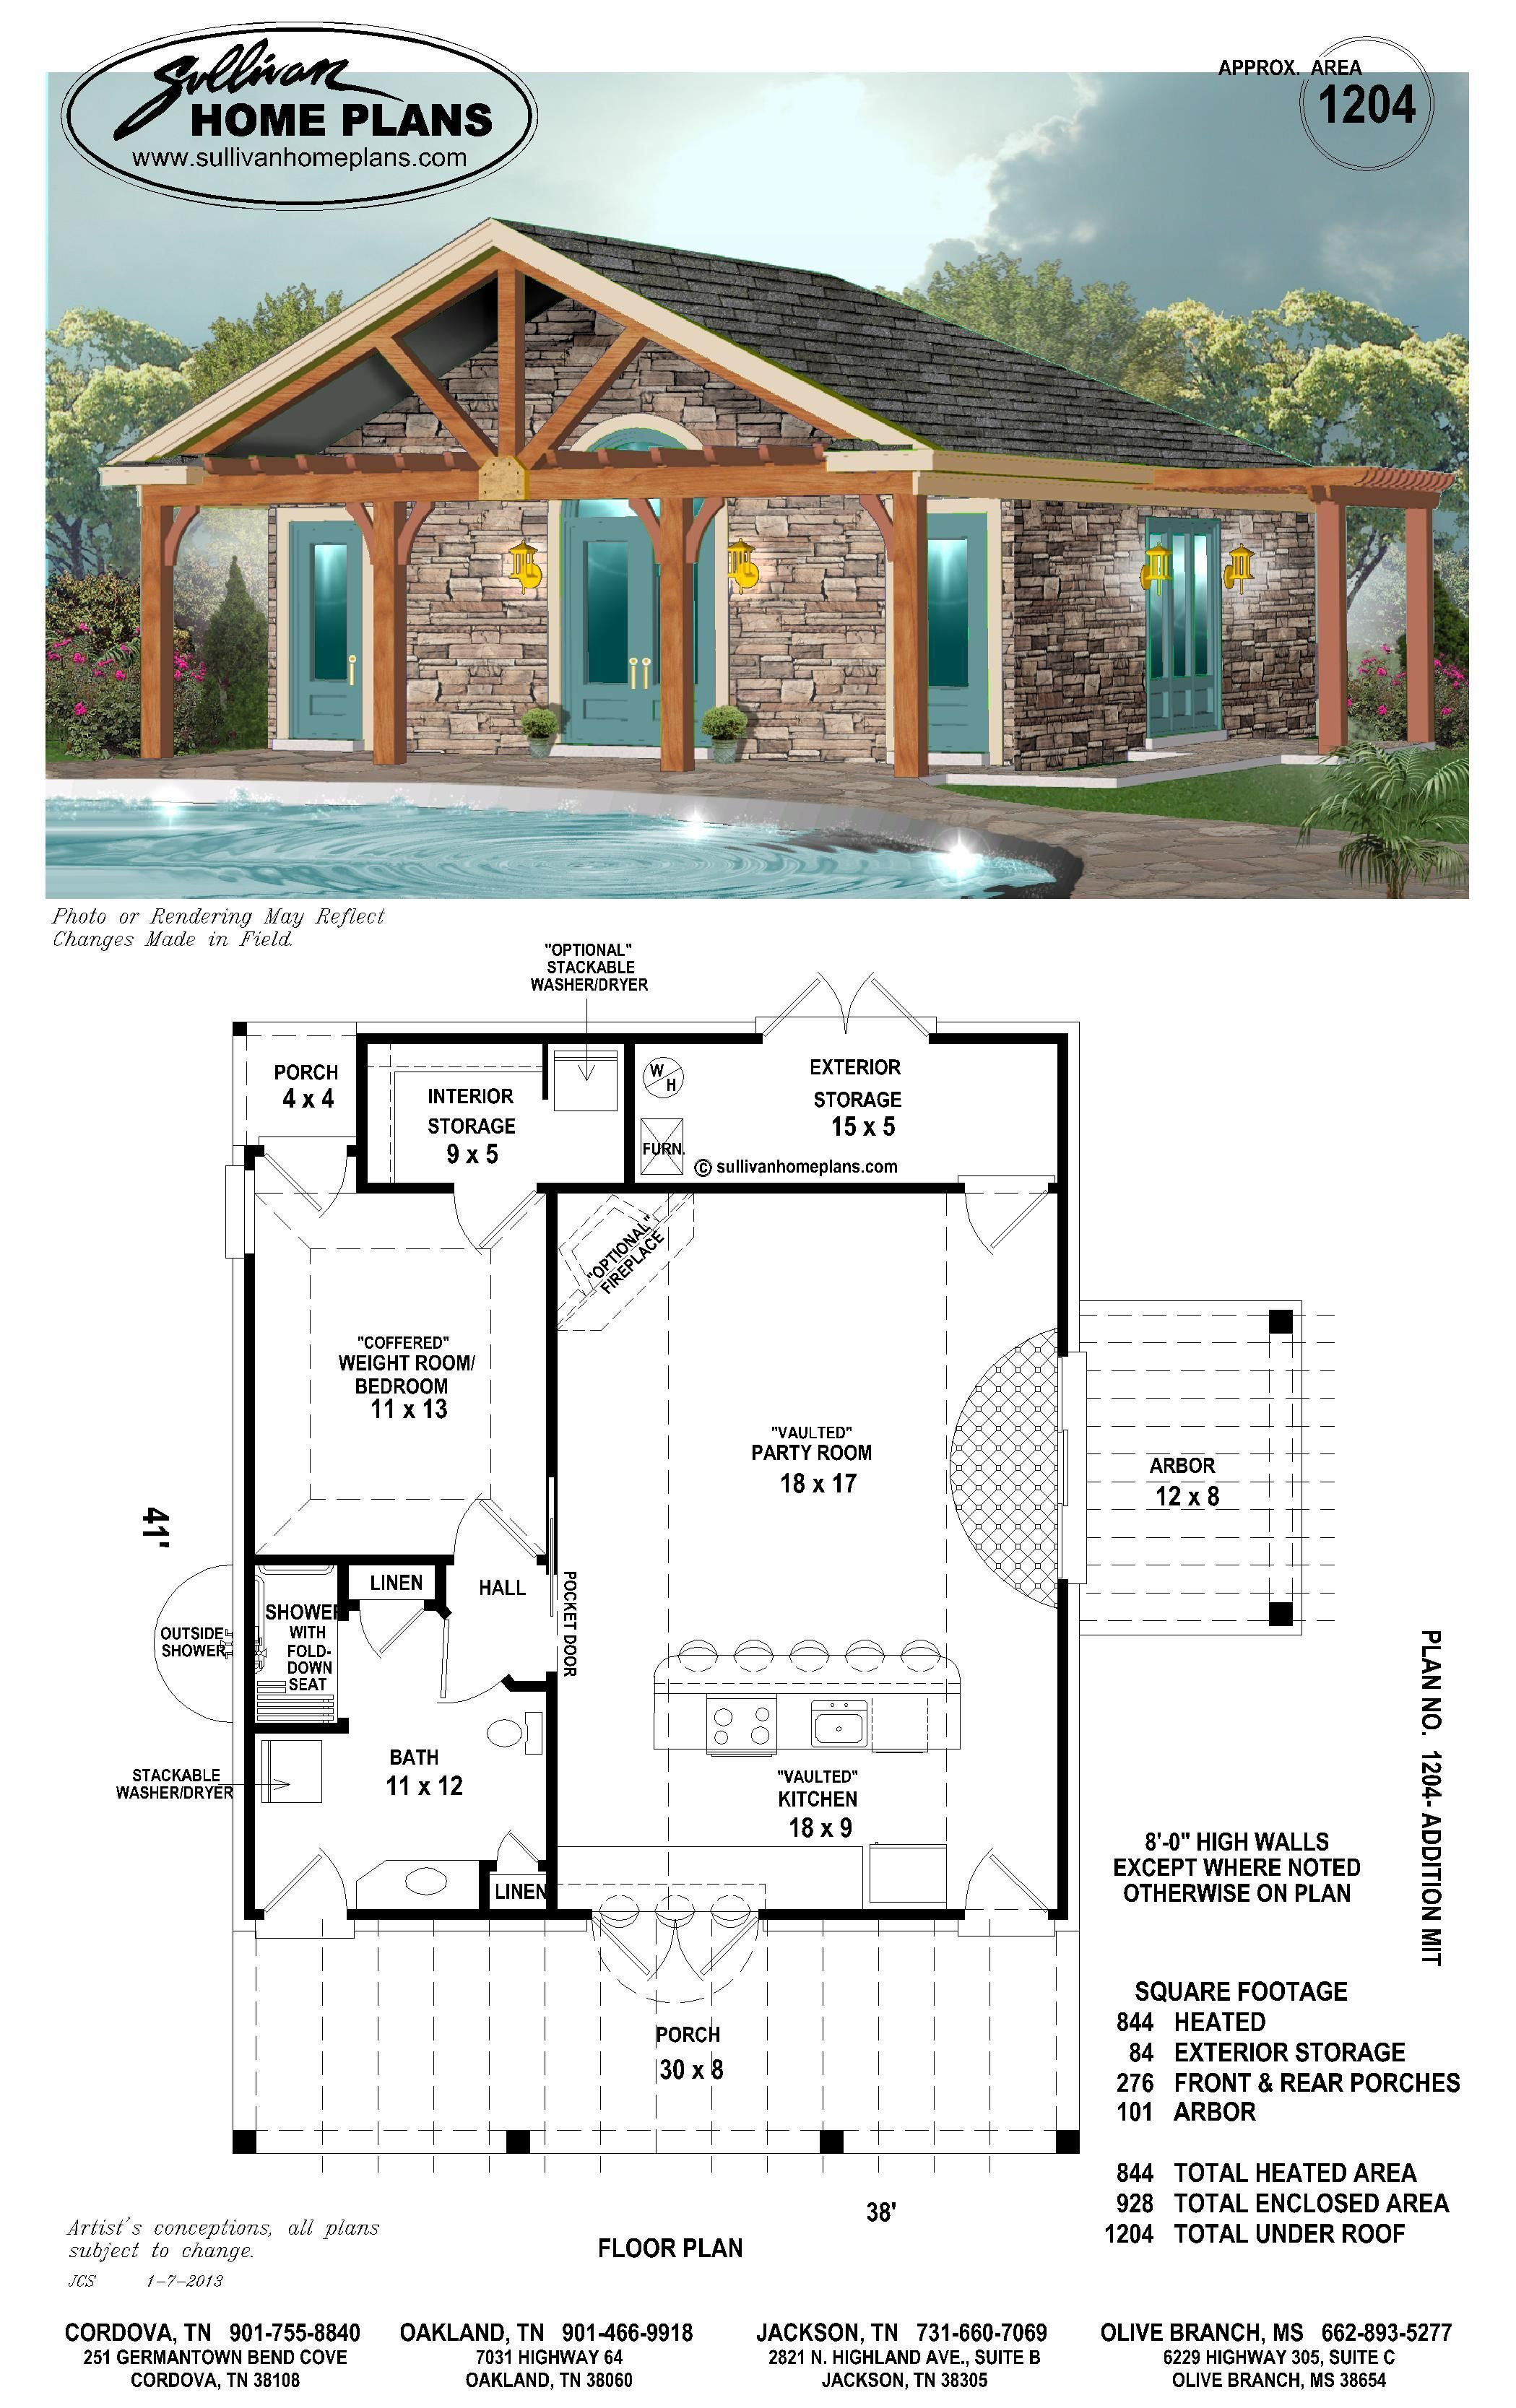 Pool House Plans Designs Fresh Love This One Must Haves Weight Room Sauna Bathroom